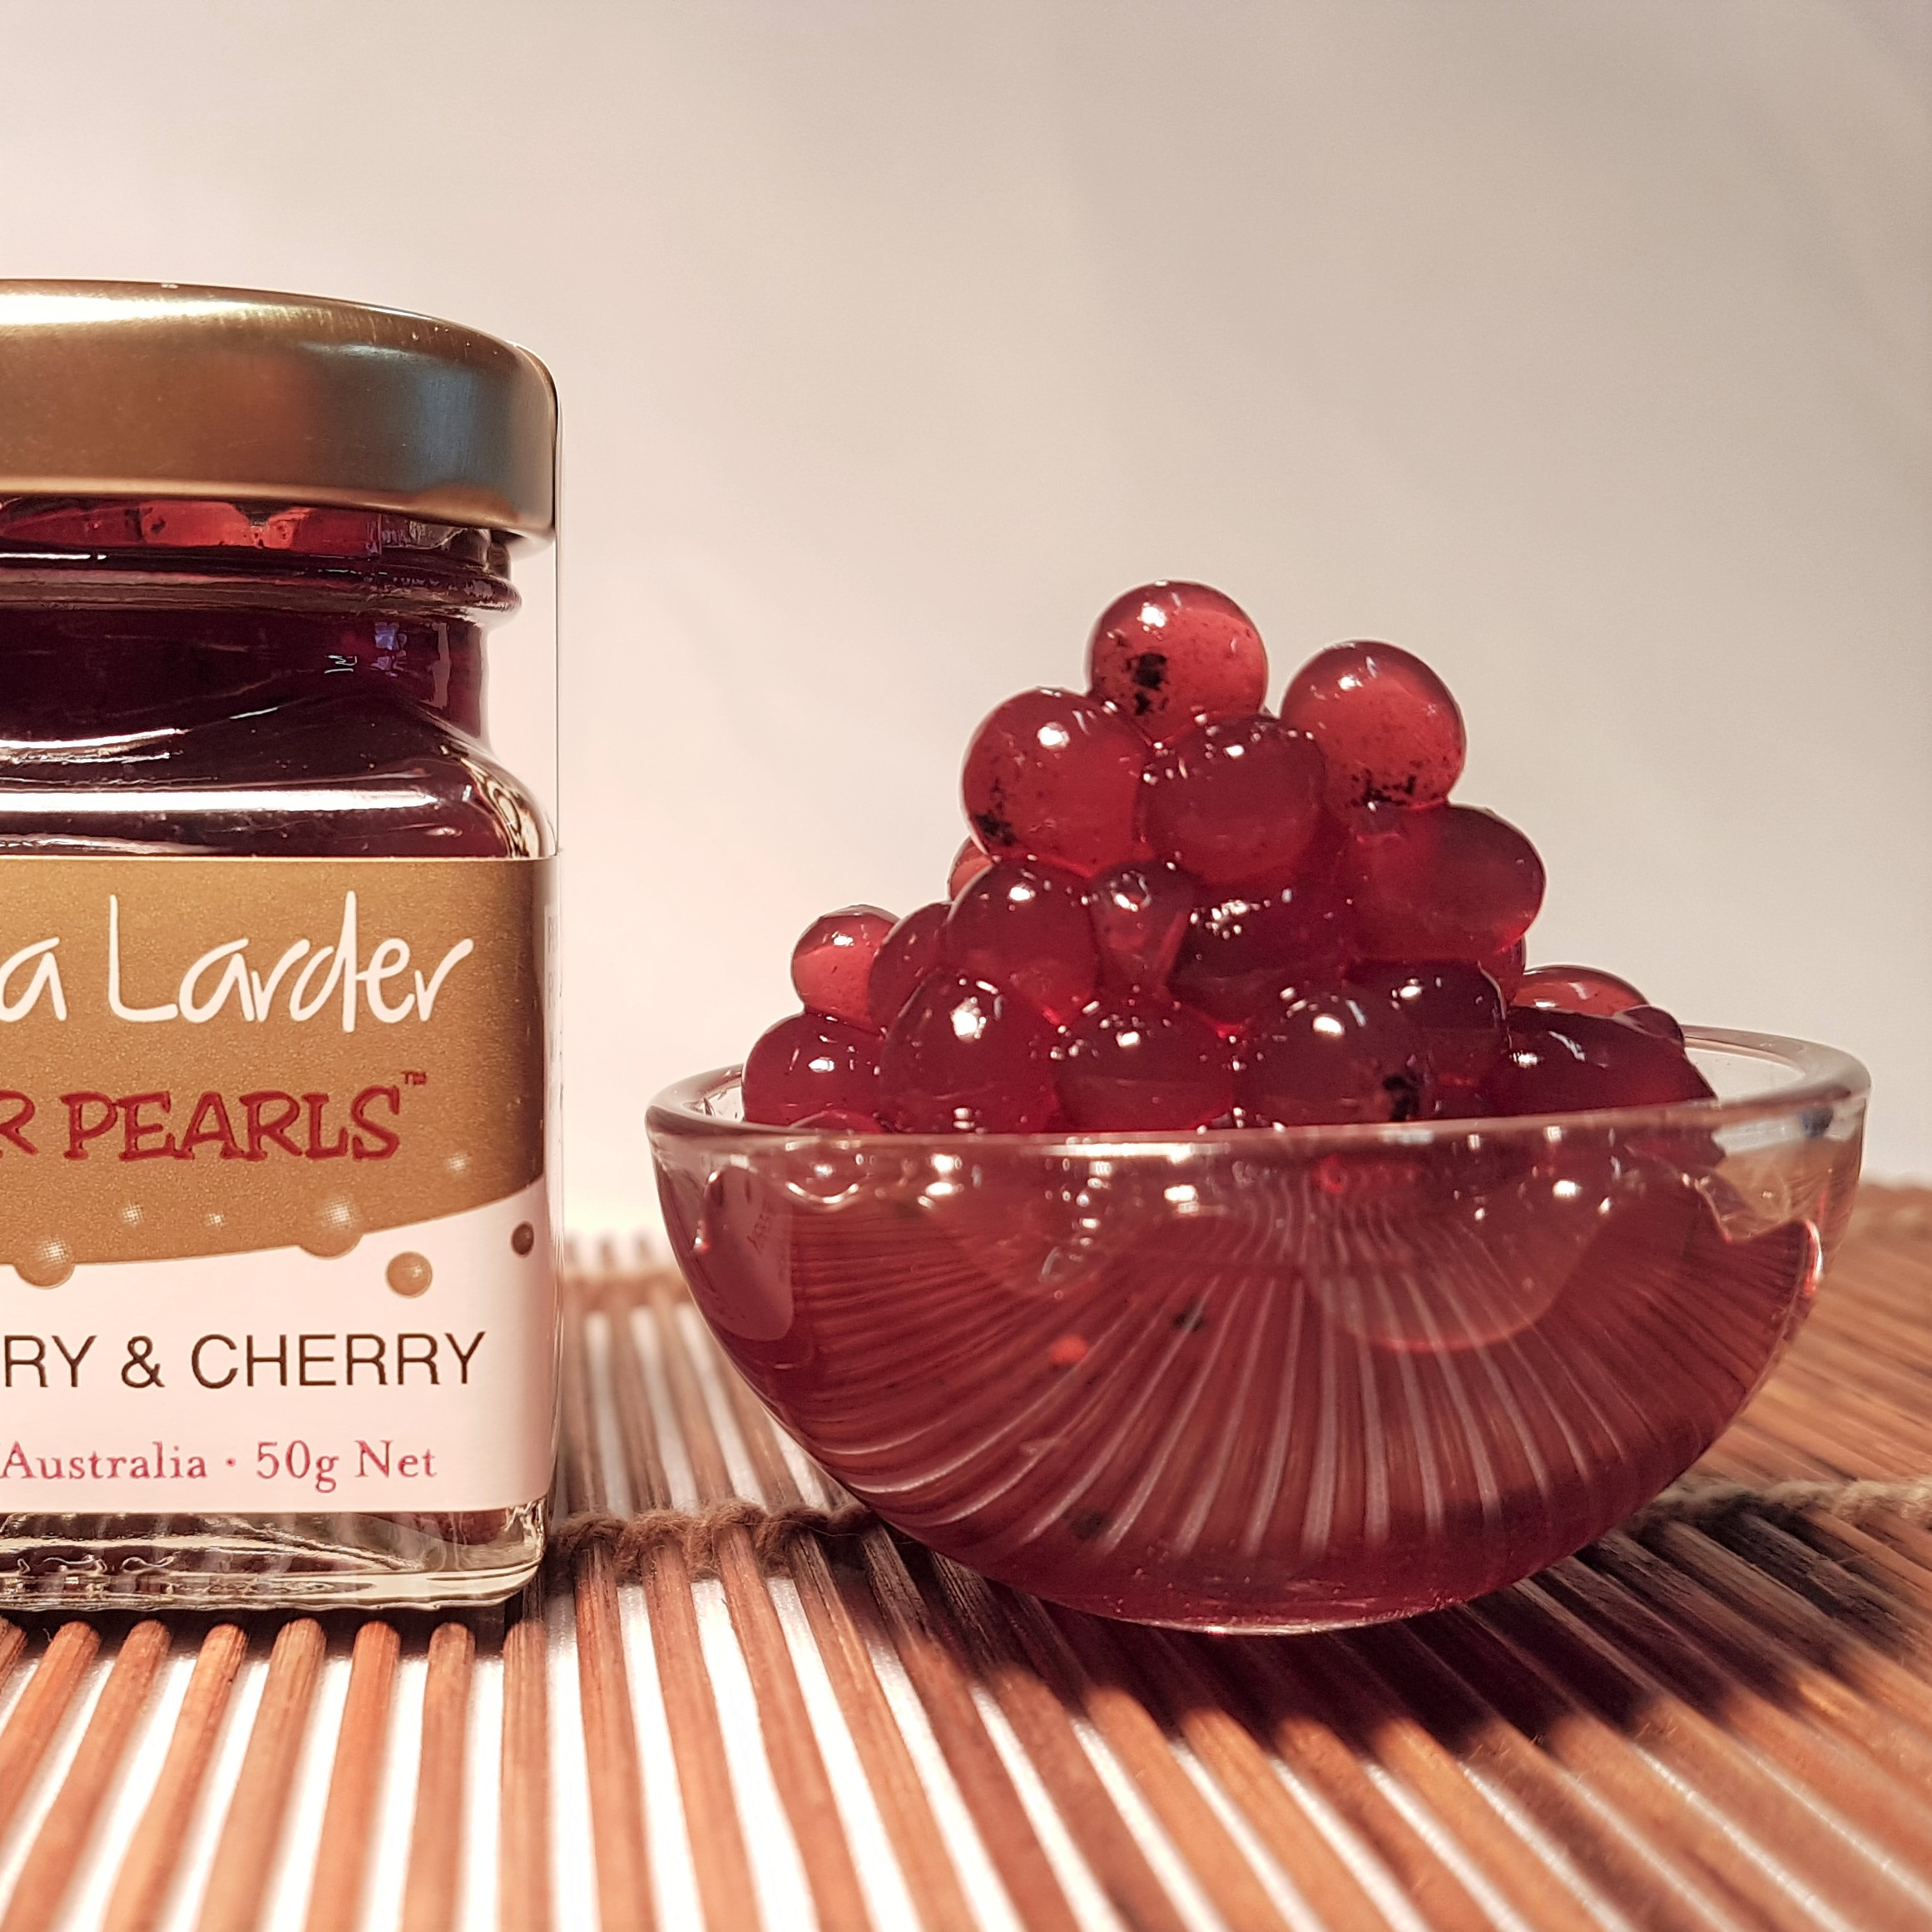 Peninsula Larders Pepperberry & Cherry Flavour Pearls add a distinctly Australian burst of flavour to your gourmet creations